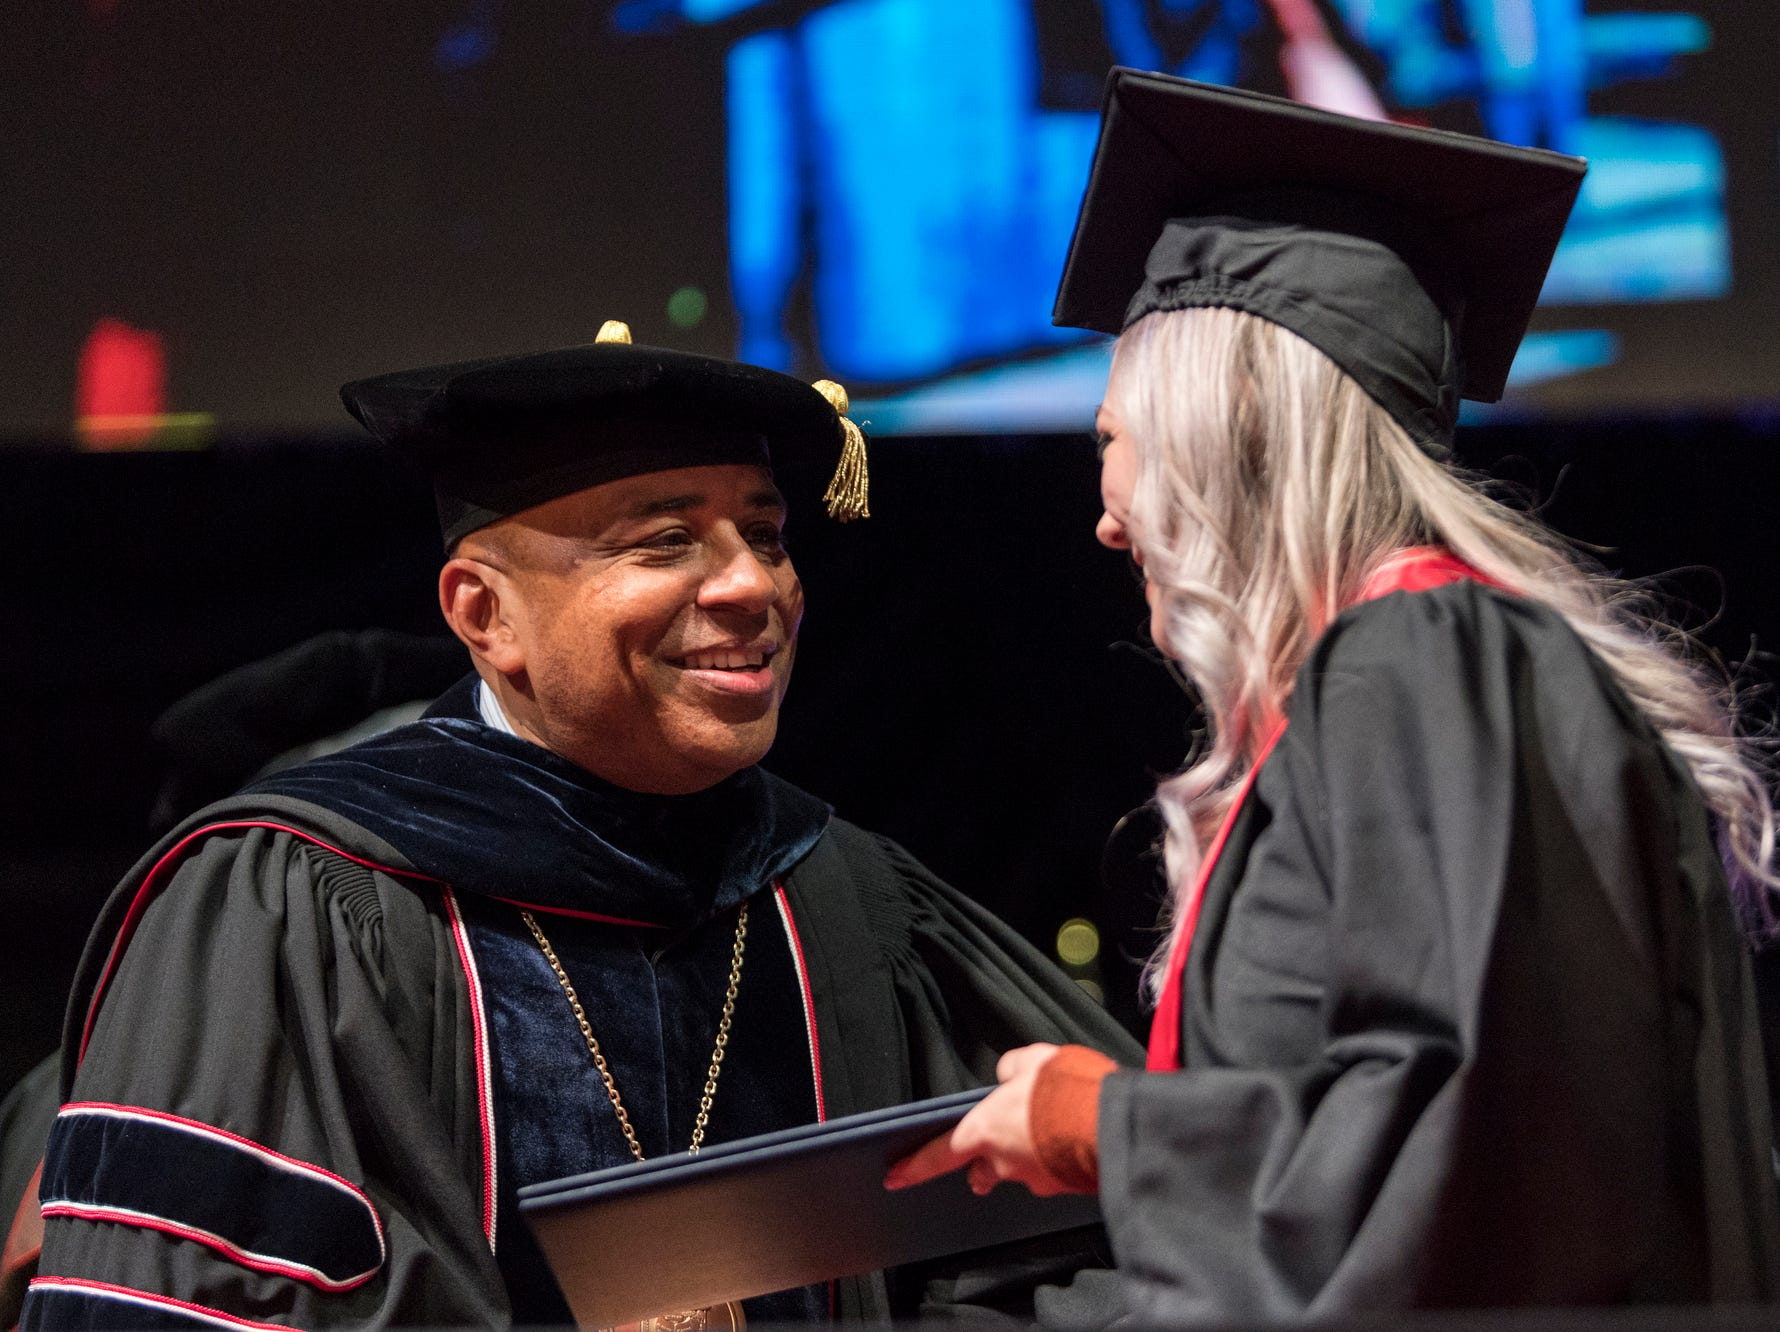 President Ronald S. Rochon, left, presents Samantha Christen Enders of Noblesville, Ind., with her Bachelor of Science degree during the University of Southern Indiana's fall commencement ceremony for the College of Liberal Arts and the Romain College of Business inside the school's Physical Activities Center in Evansville, Ind., Saturday, Dec. 8, 2018.